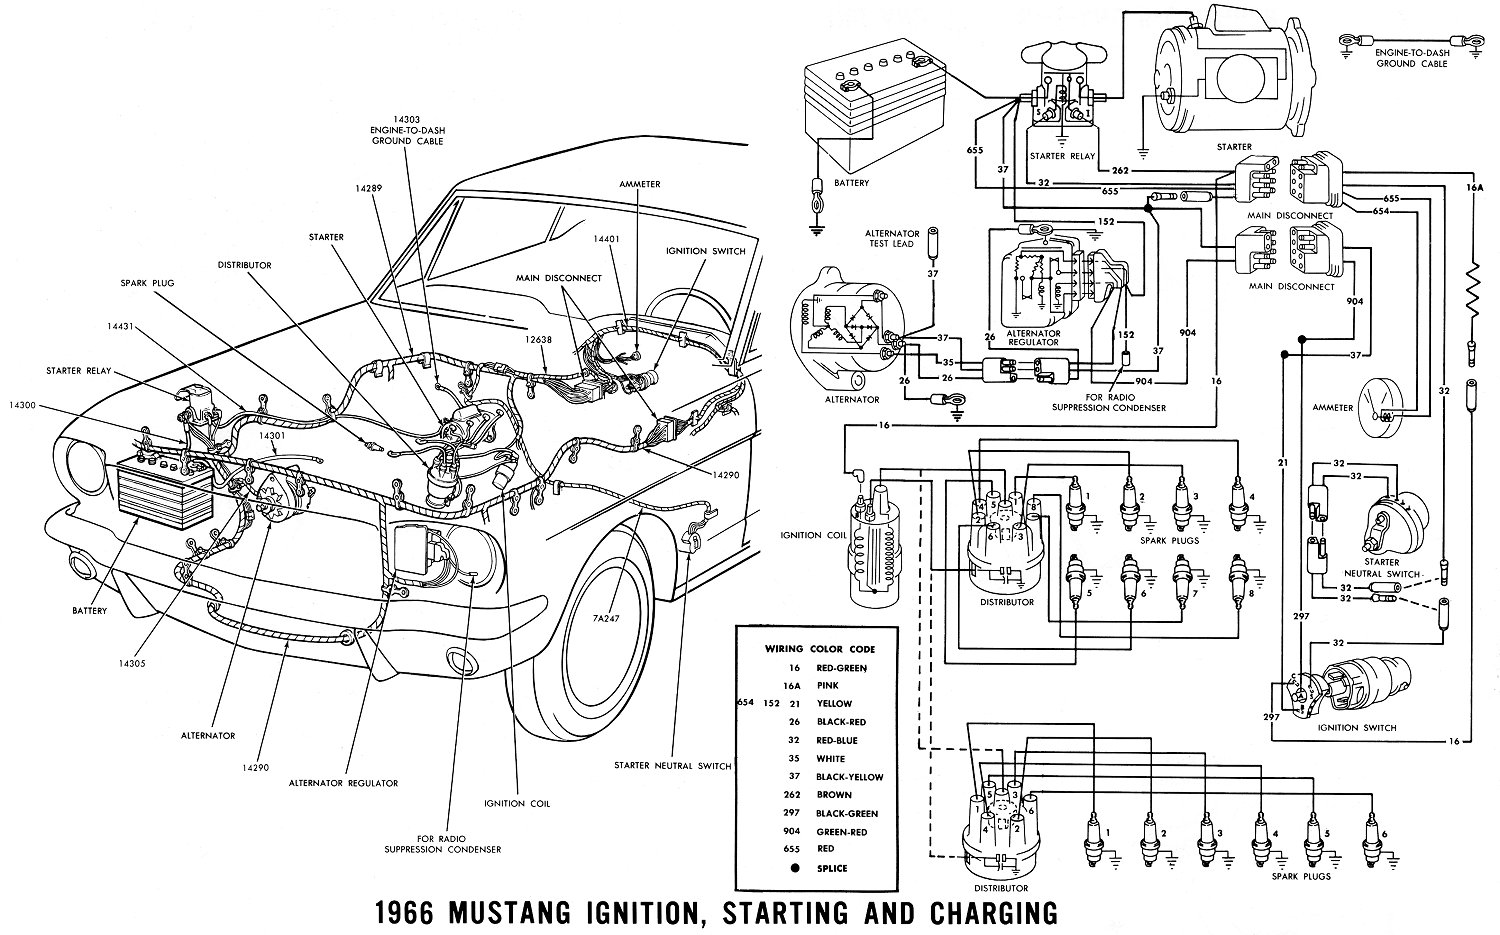 V8 Engine Schematic besides Wiring in addition Dodge Nitro Parts Diagram besides 1948 Ford F1 Wiring Harness likewise Exterior Light Turn Signals And Horns. on 1955 ford thunderbird frame